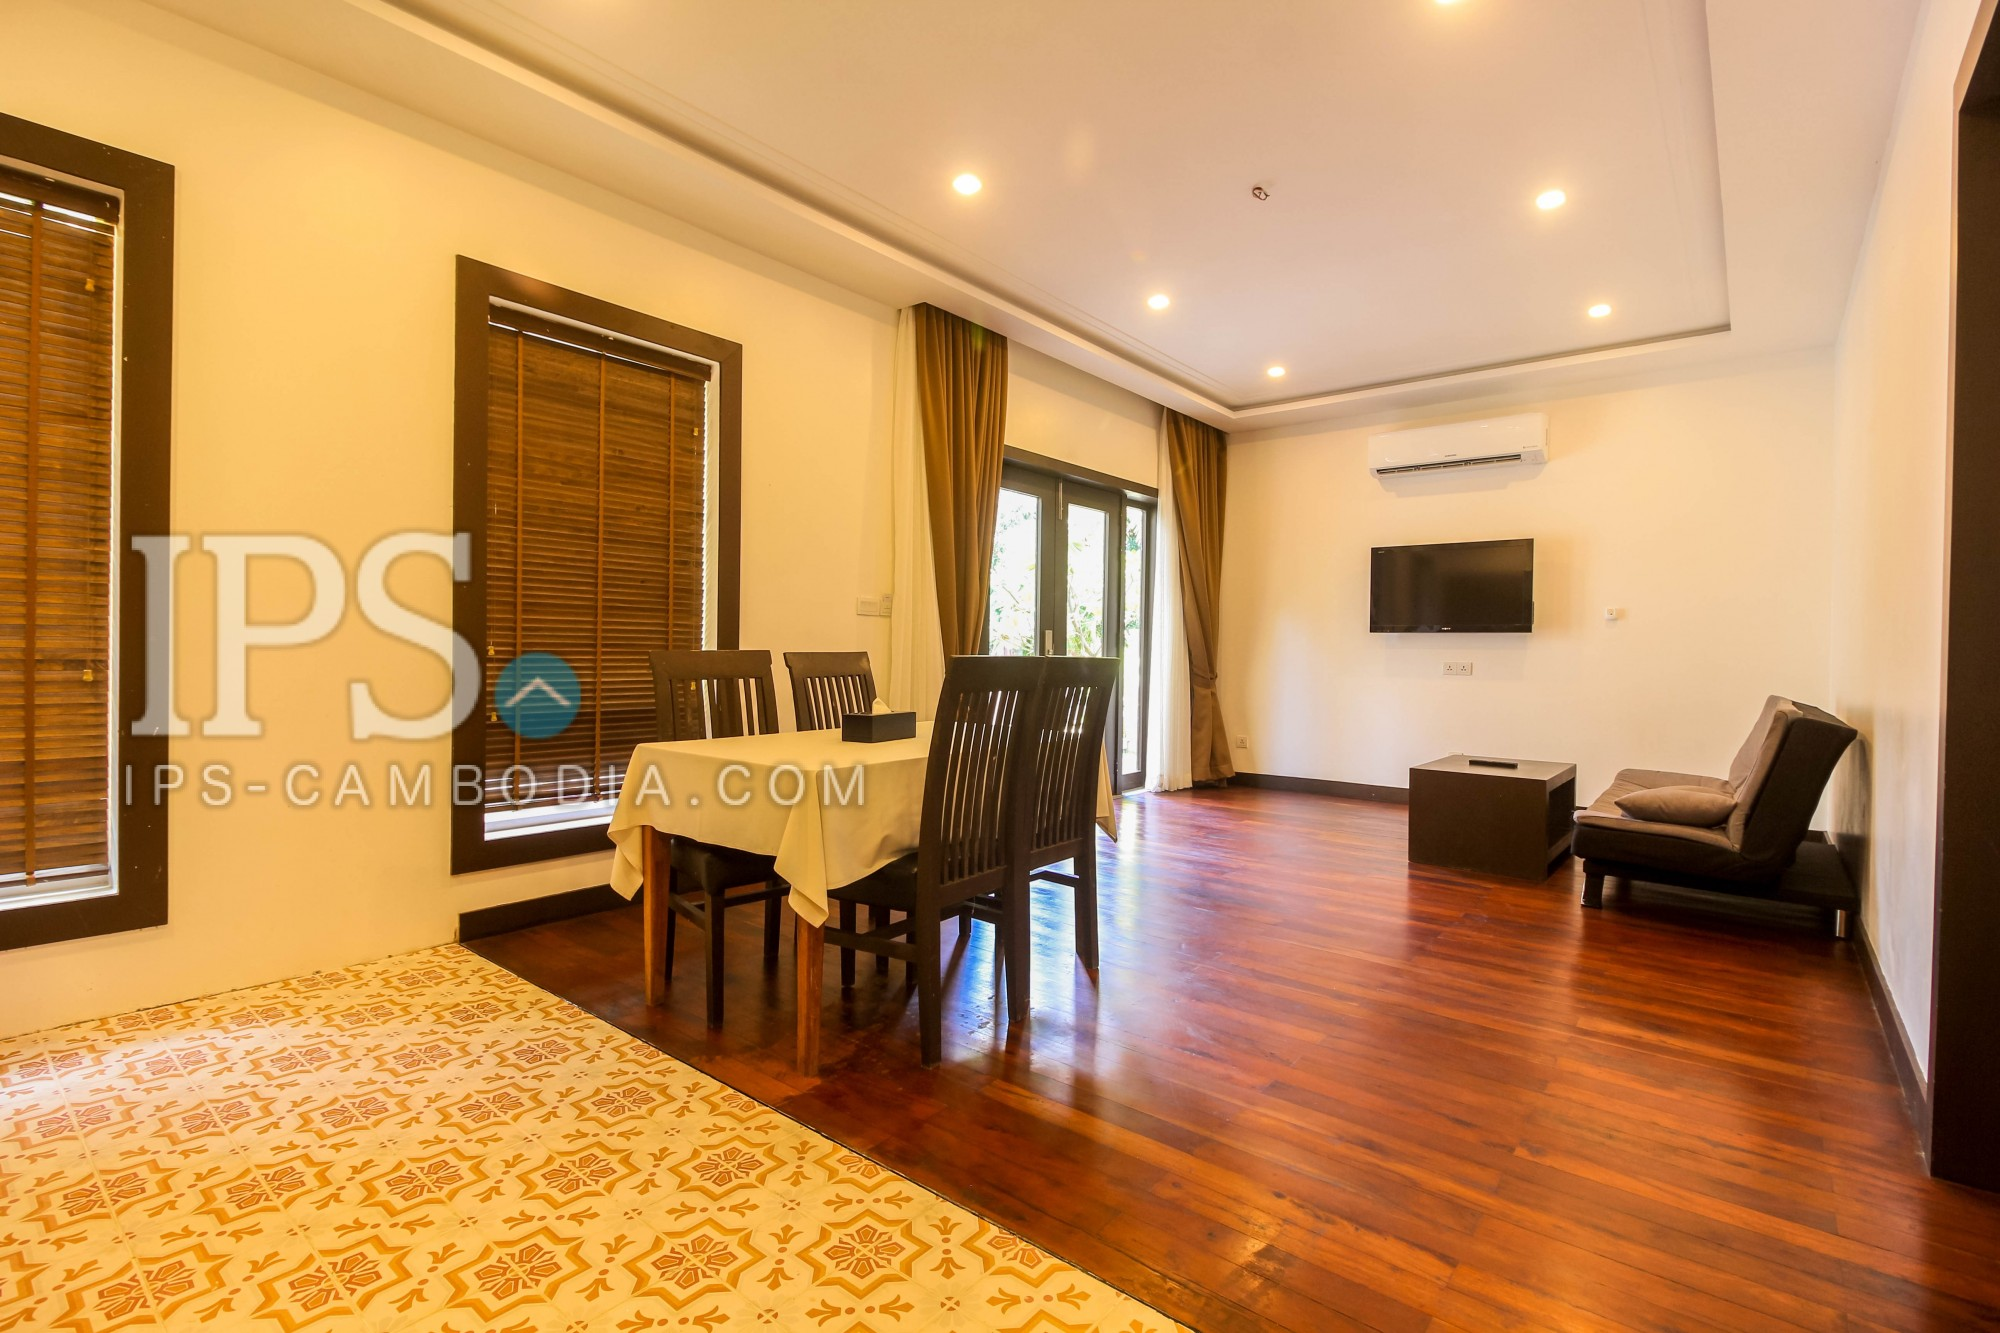 1 Bedroom Apartment For Rent - Kouk Chak, Siem Reap